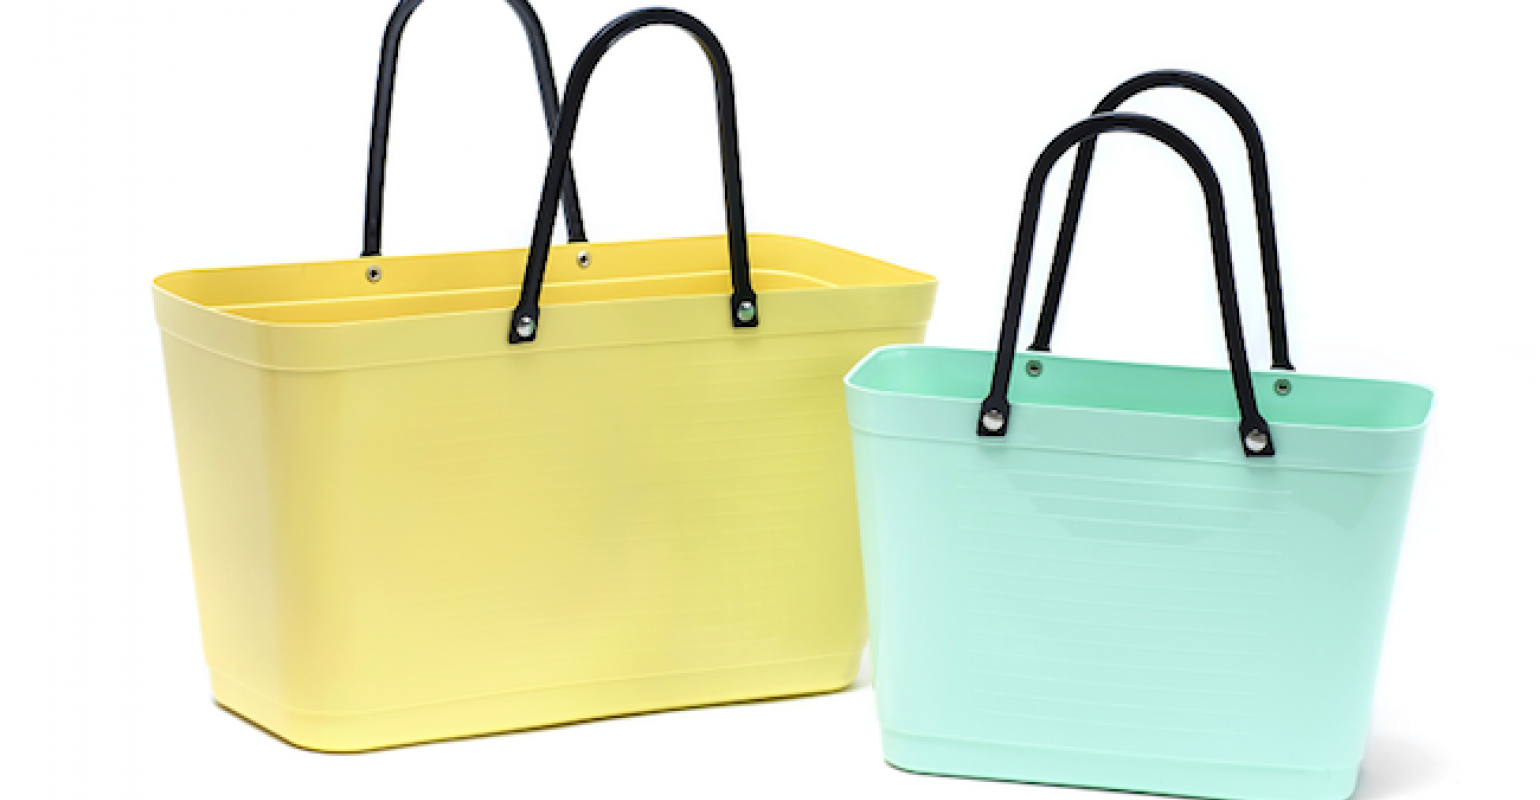 Plastic bag from the 1950s is hot new thing | plasticstoday.com